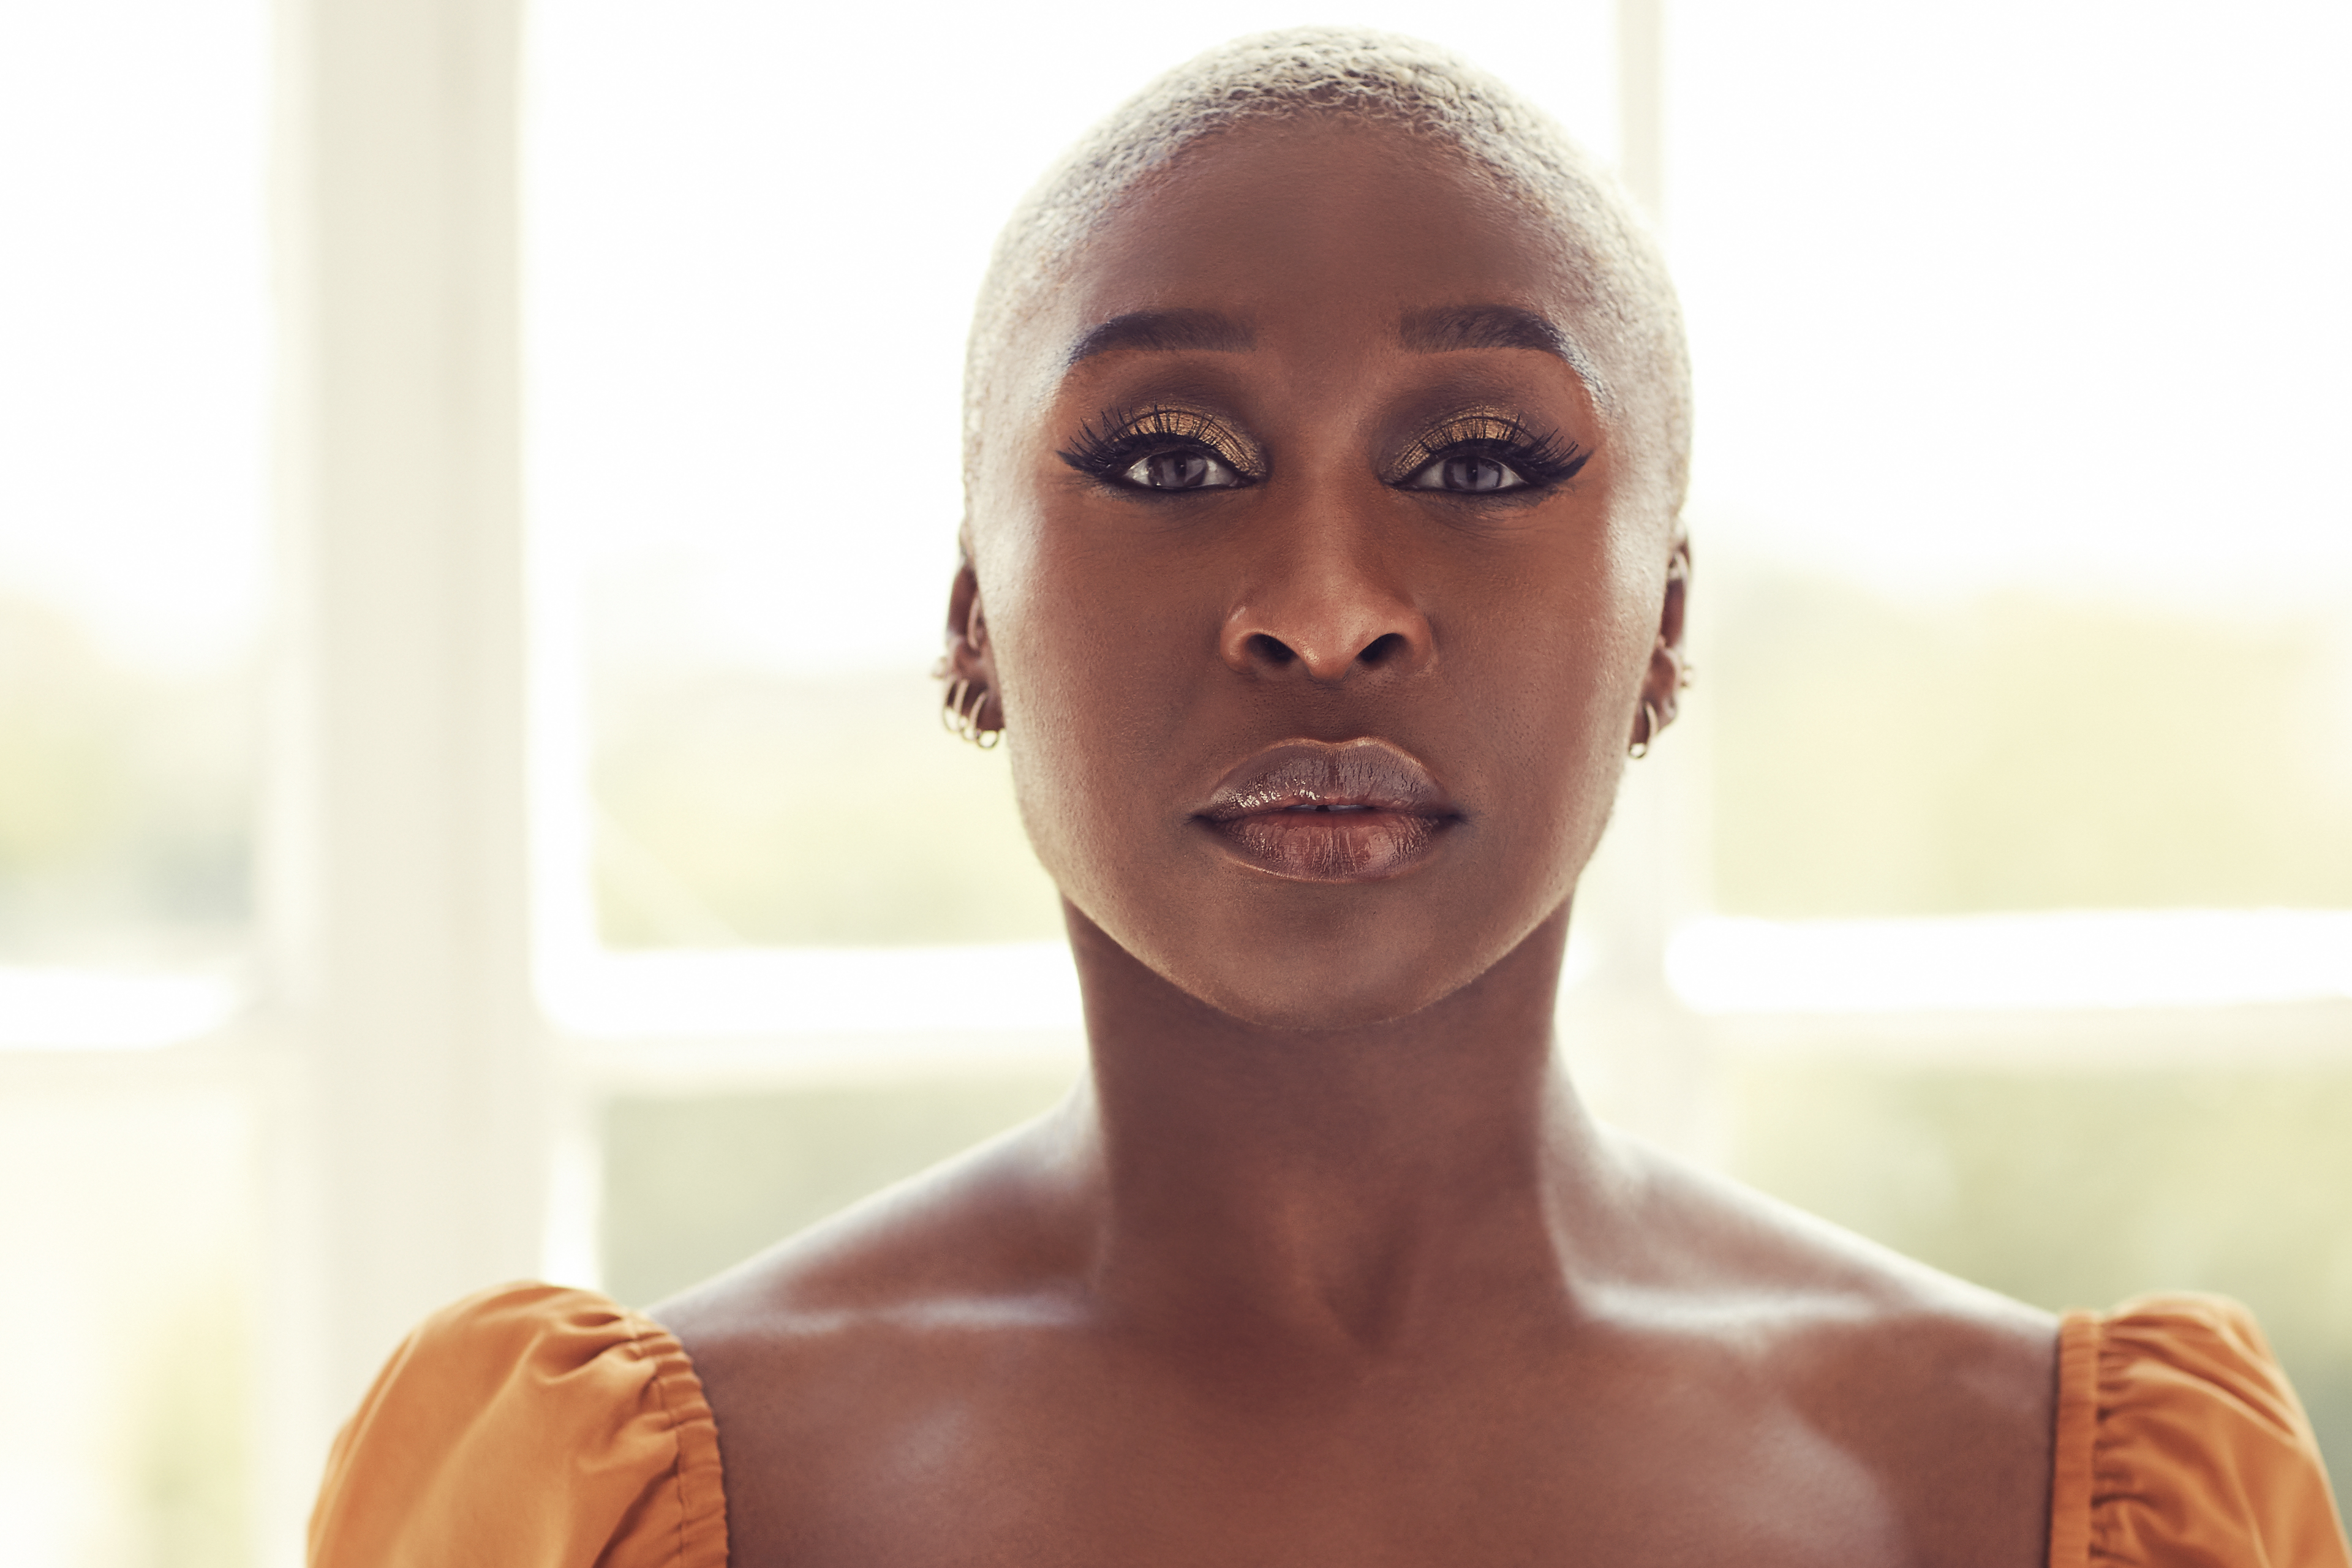 Images Cynthia Erivo nude (12 photo), Sexy, Paparazzi, Selfie, butt 2020